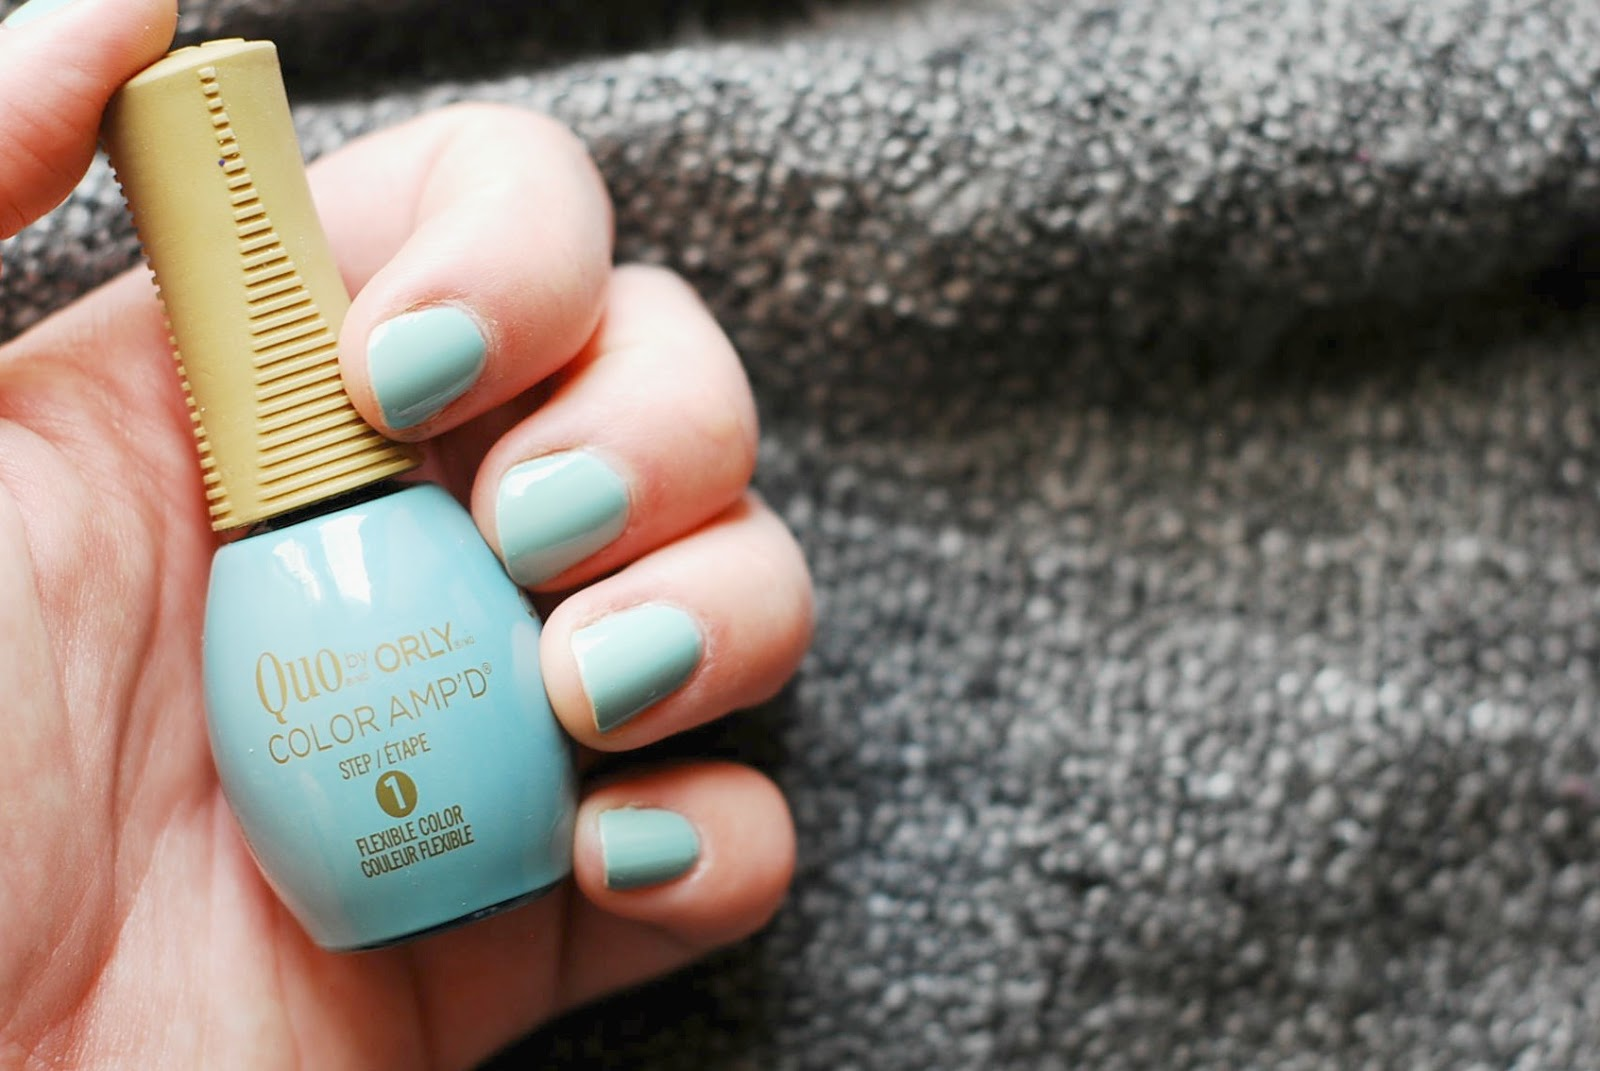 Quo by Orly Color Amp\'d Nail Polish Review and Swatches — A Certain ...